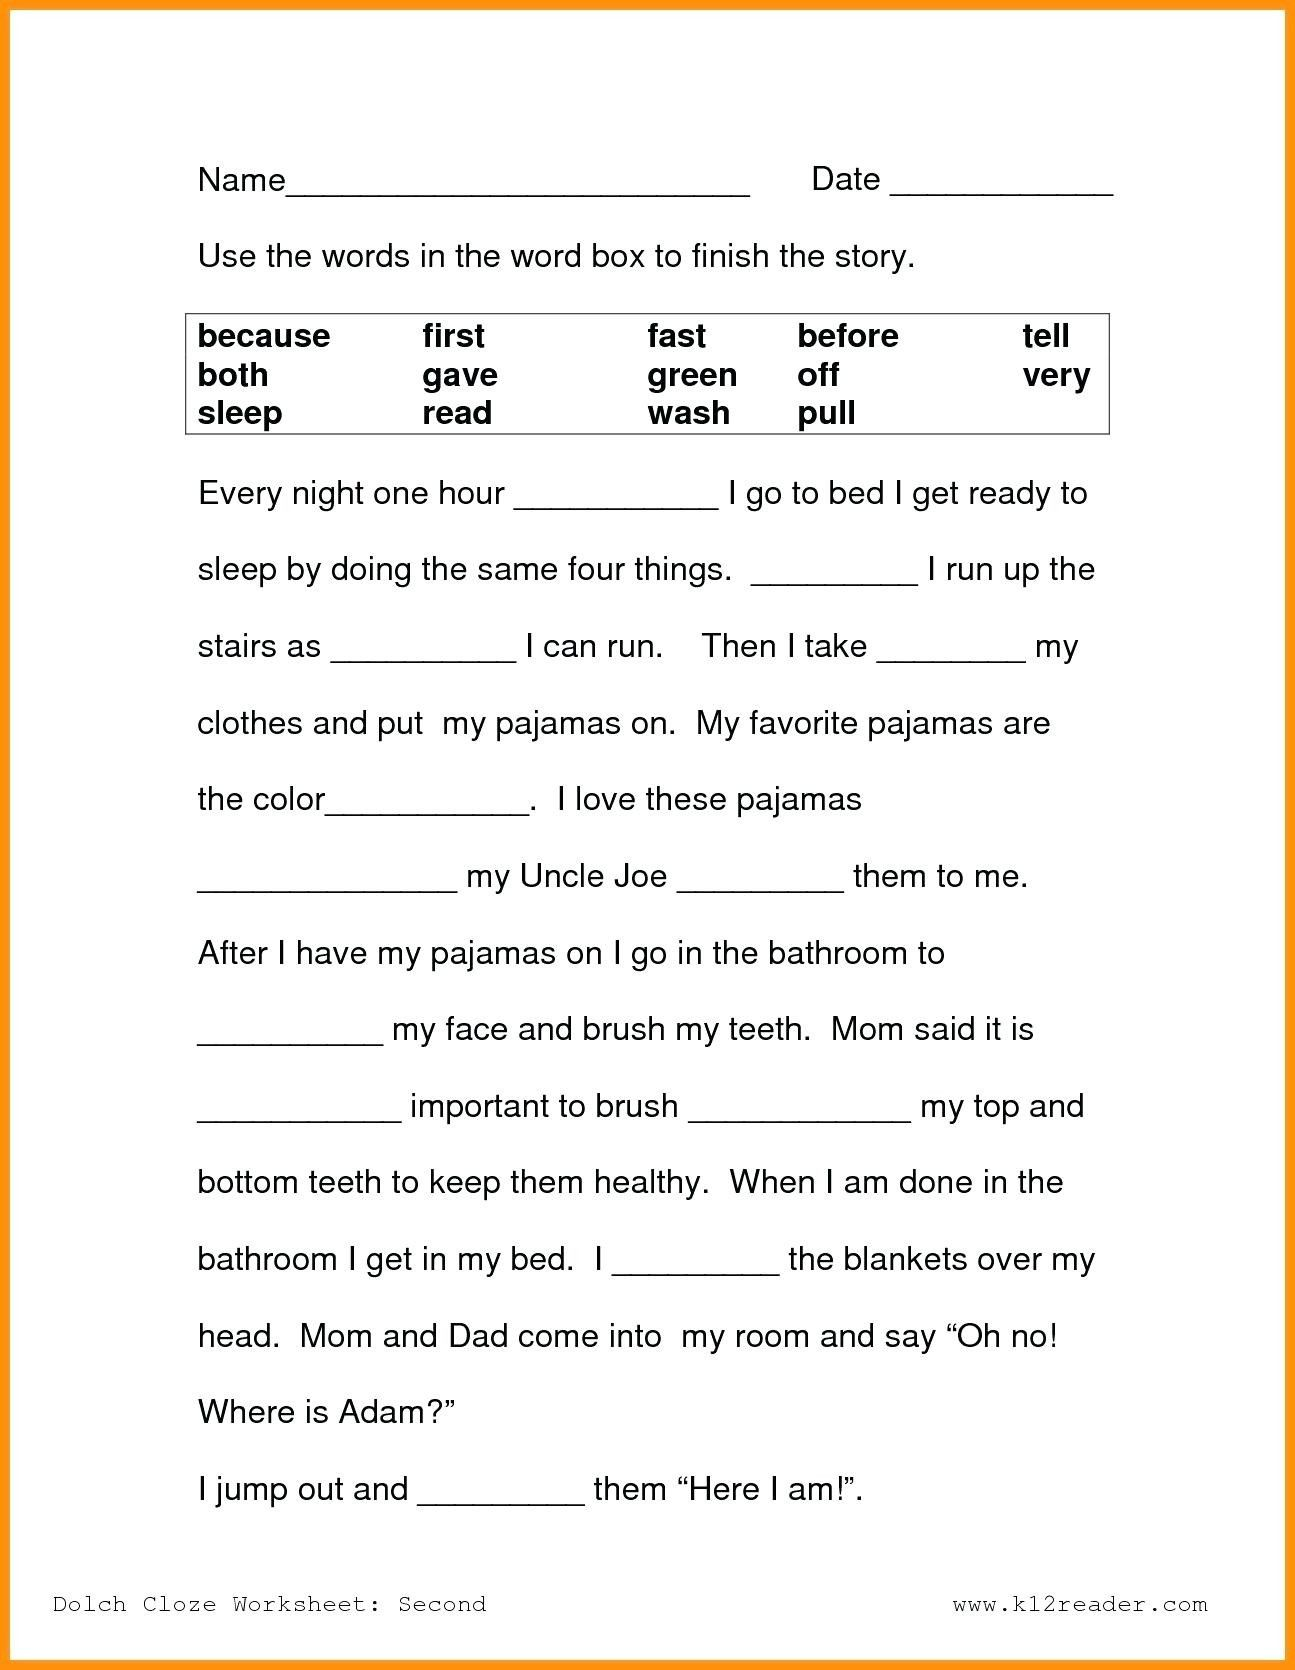 hight resolution of Winston Grammar 6th Grade Worksheet Printable   Printable Worksheets and  Activities for Teachers